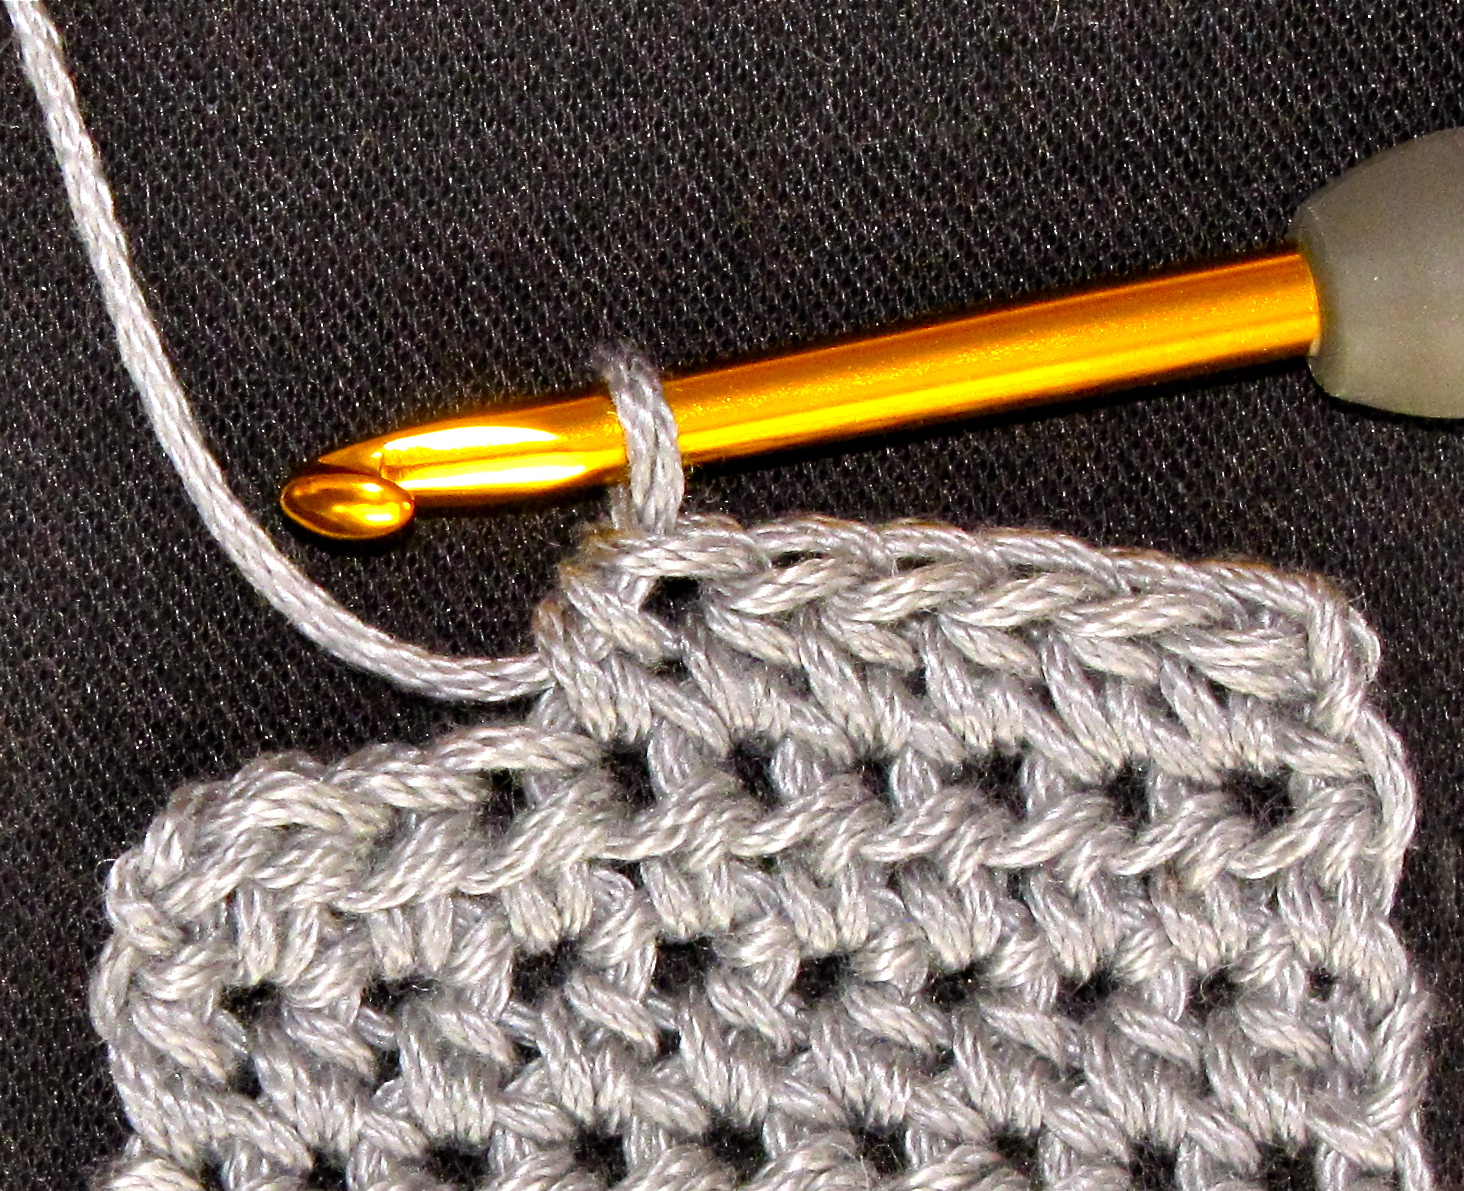 Crochet Stitches Uk Treble : ... Crochet Pattern Companion: That Tricky Half Double Crochet Stitch (hdc